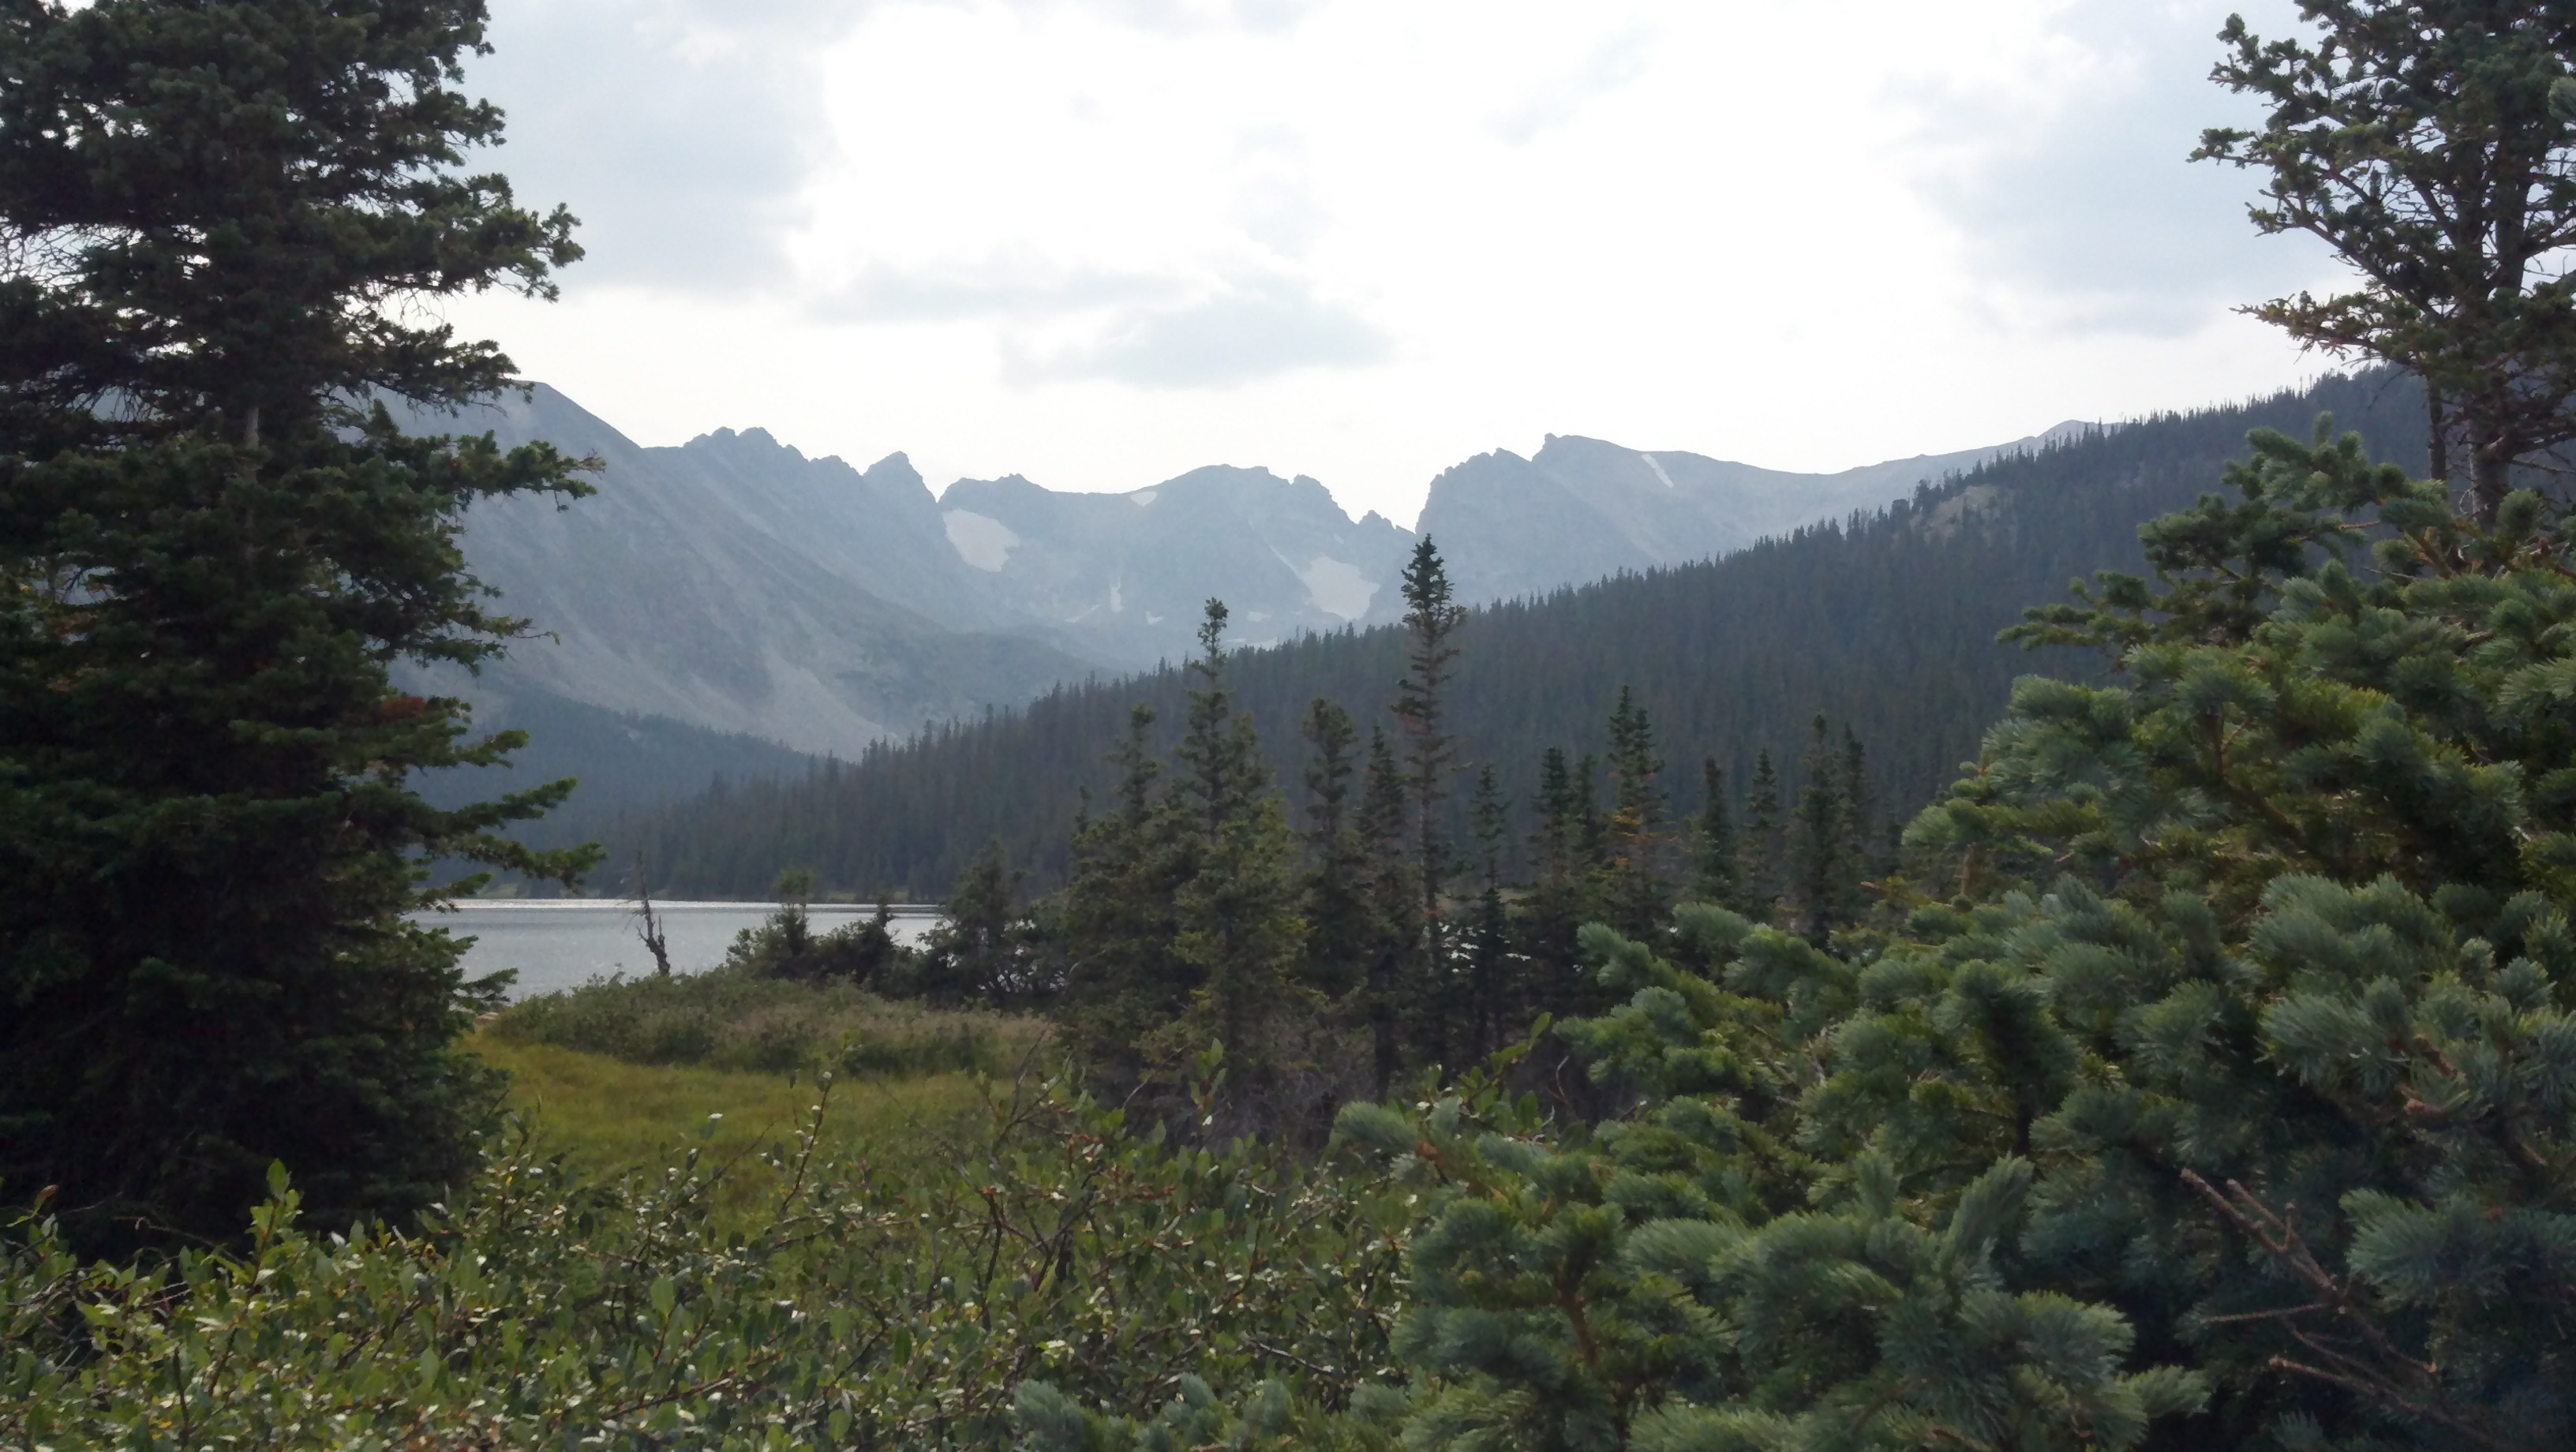 Class Field Trip to Brainard Lake